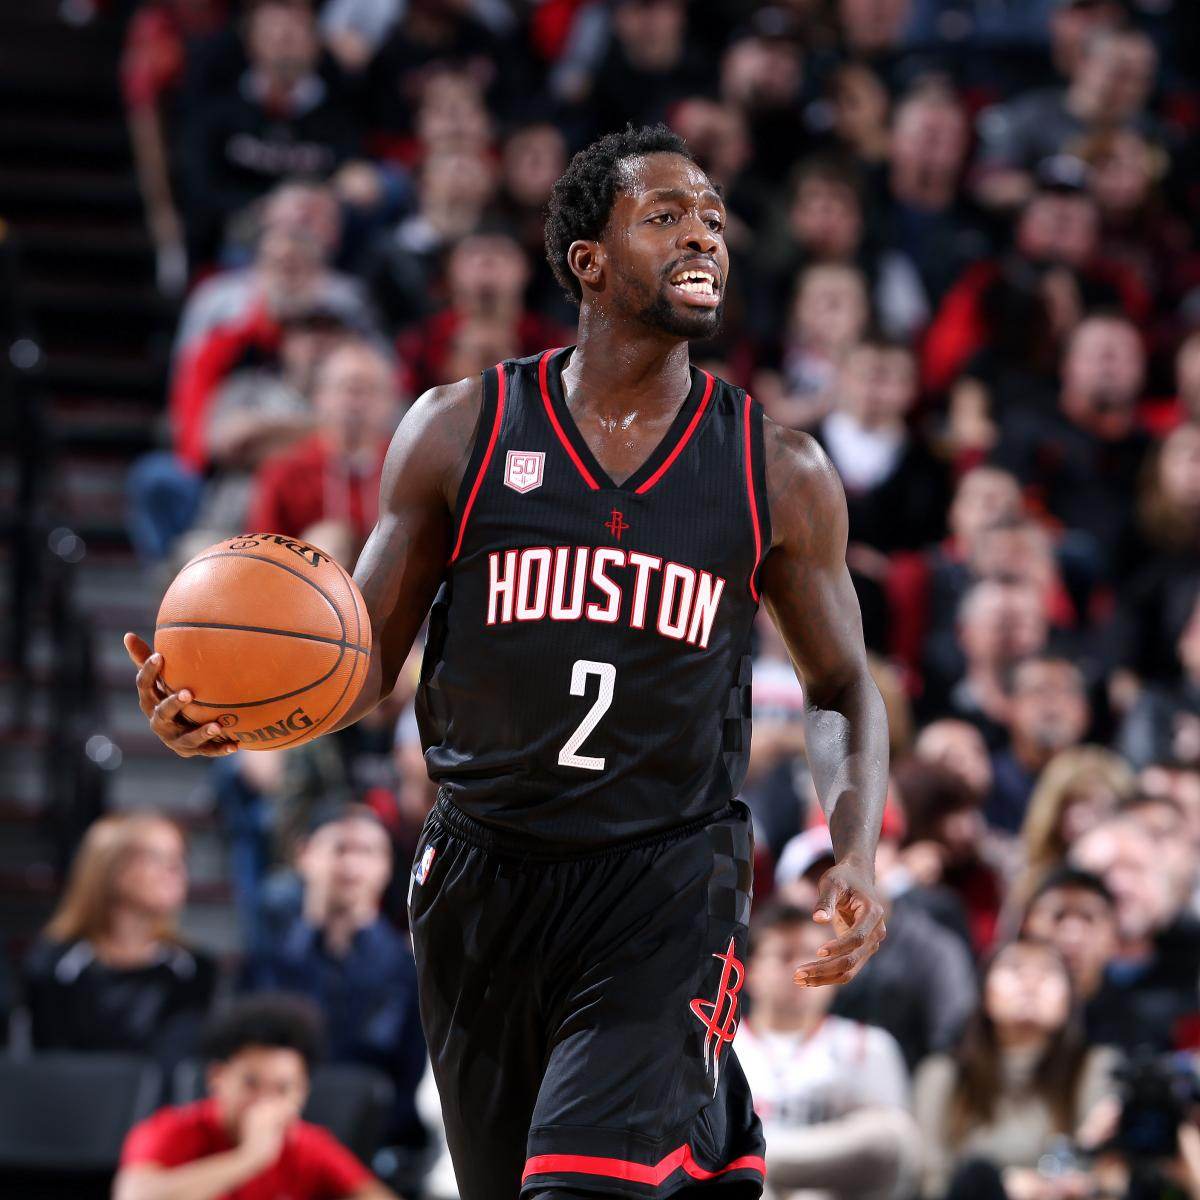 Houston Rockets Game Log: Why Patrick Beverley Matters To The Houston Rockets